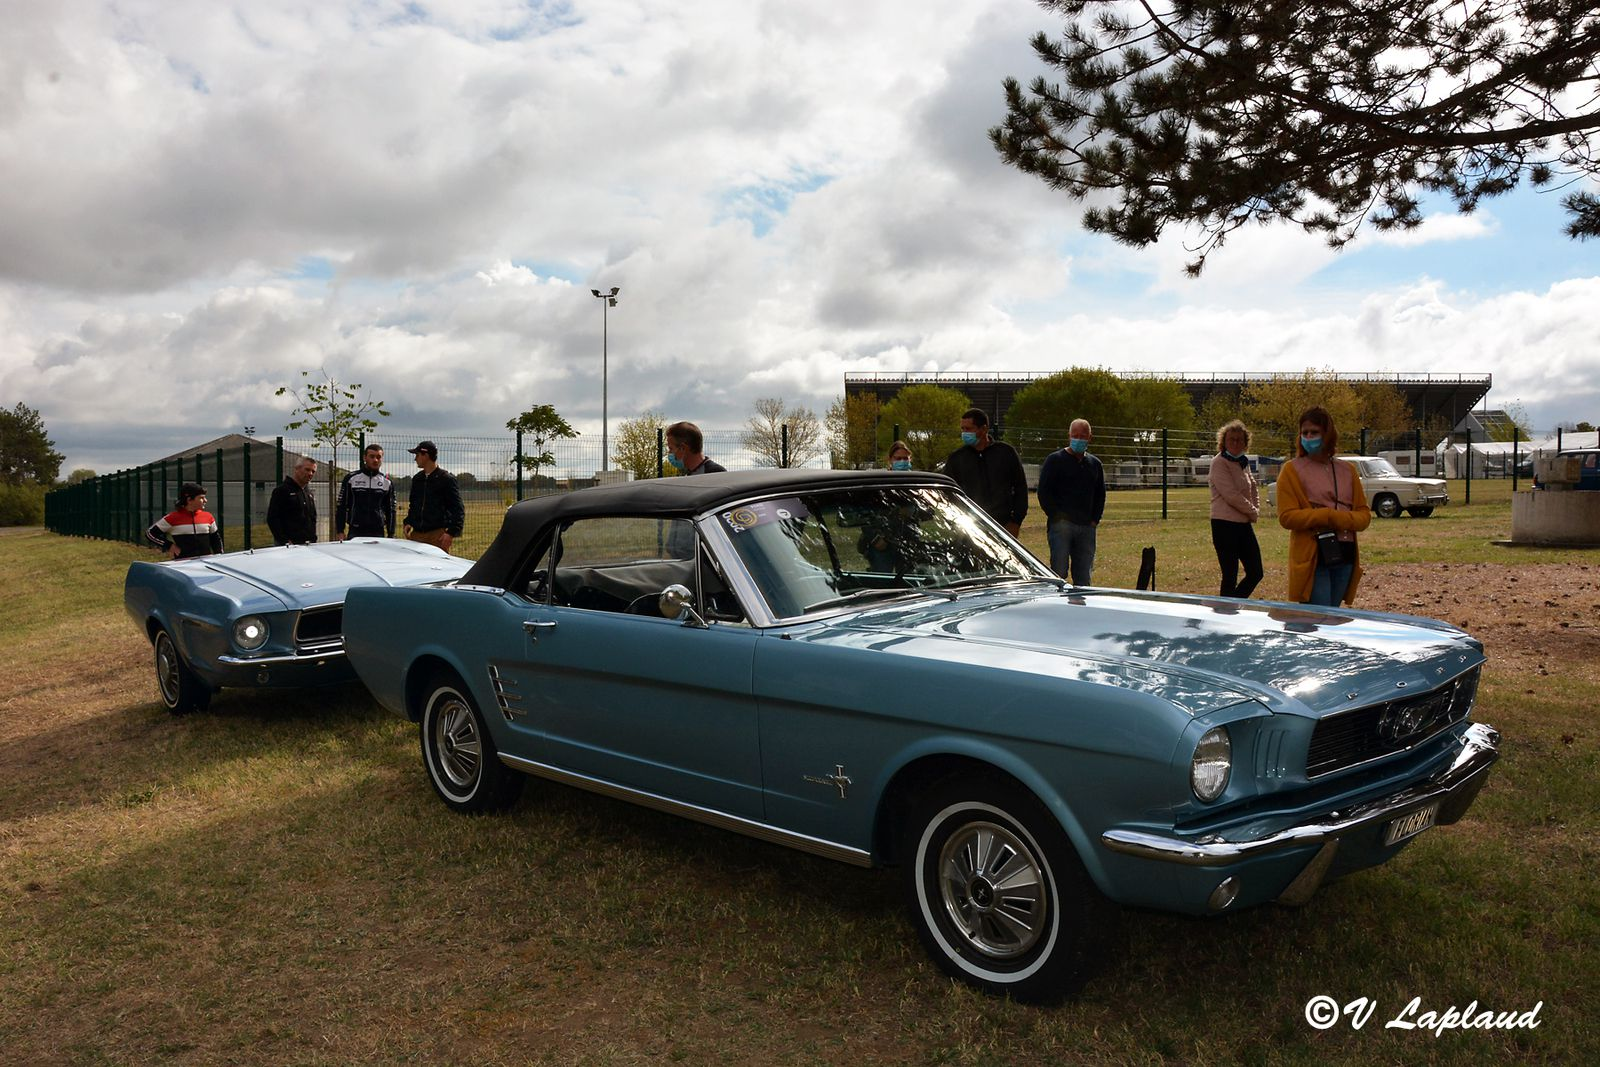 Ford Mustang Cabriolet 1966 et sa remorque, Classic Days 2020, Magny-Cours.